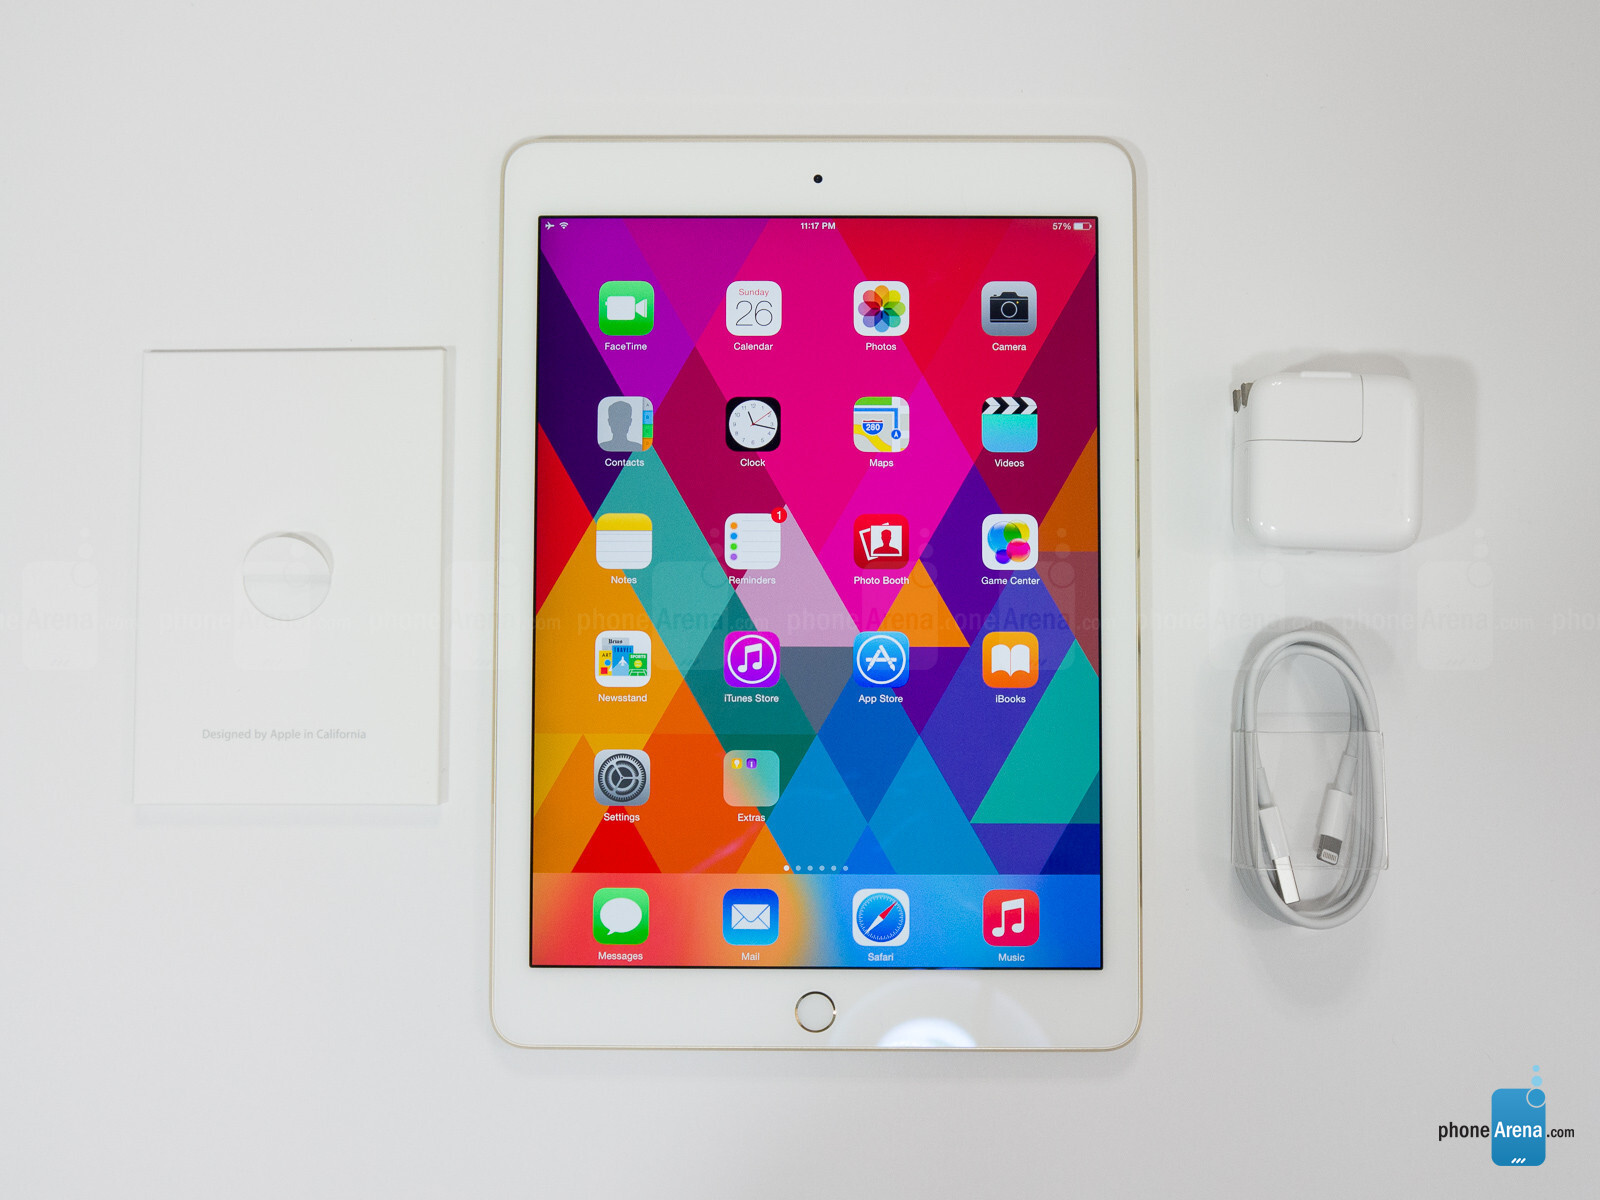 The iPad is one of many tablet brands available at Best Buy. It might be the ideal choice if you already have a Mac or iPhone because it uses the same operating system, Apple iOS. This means you can access your calendar, contacts, music from iTunes and more on the iPad, too.